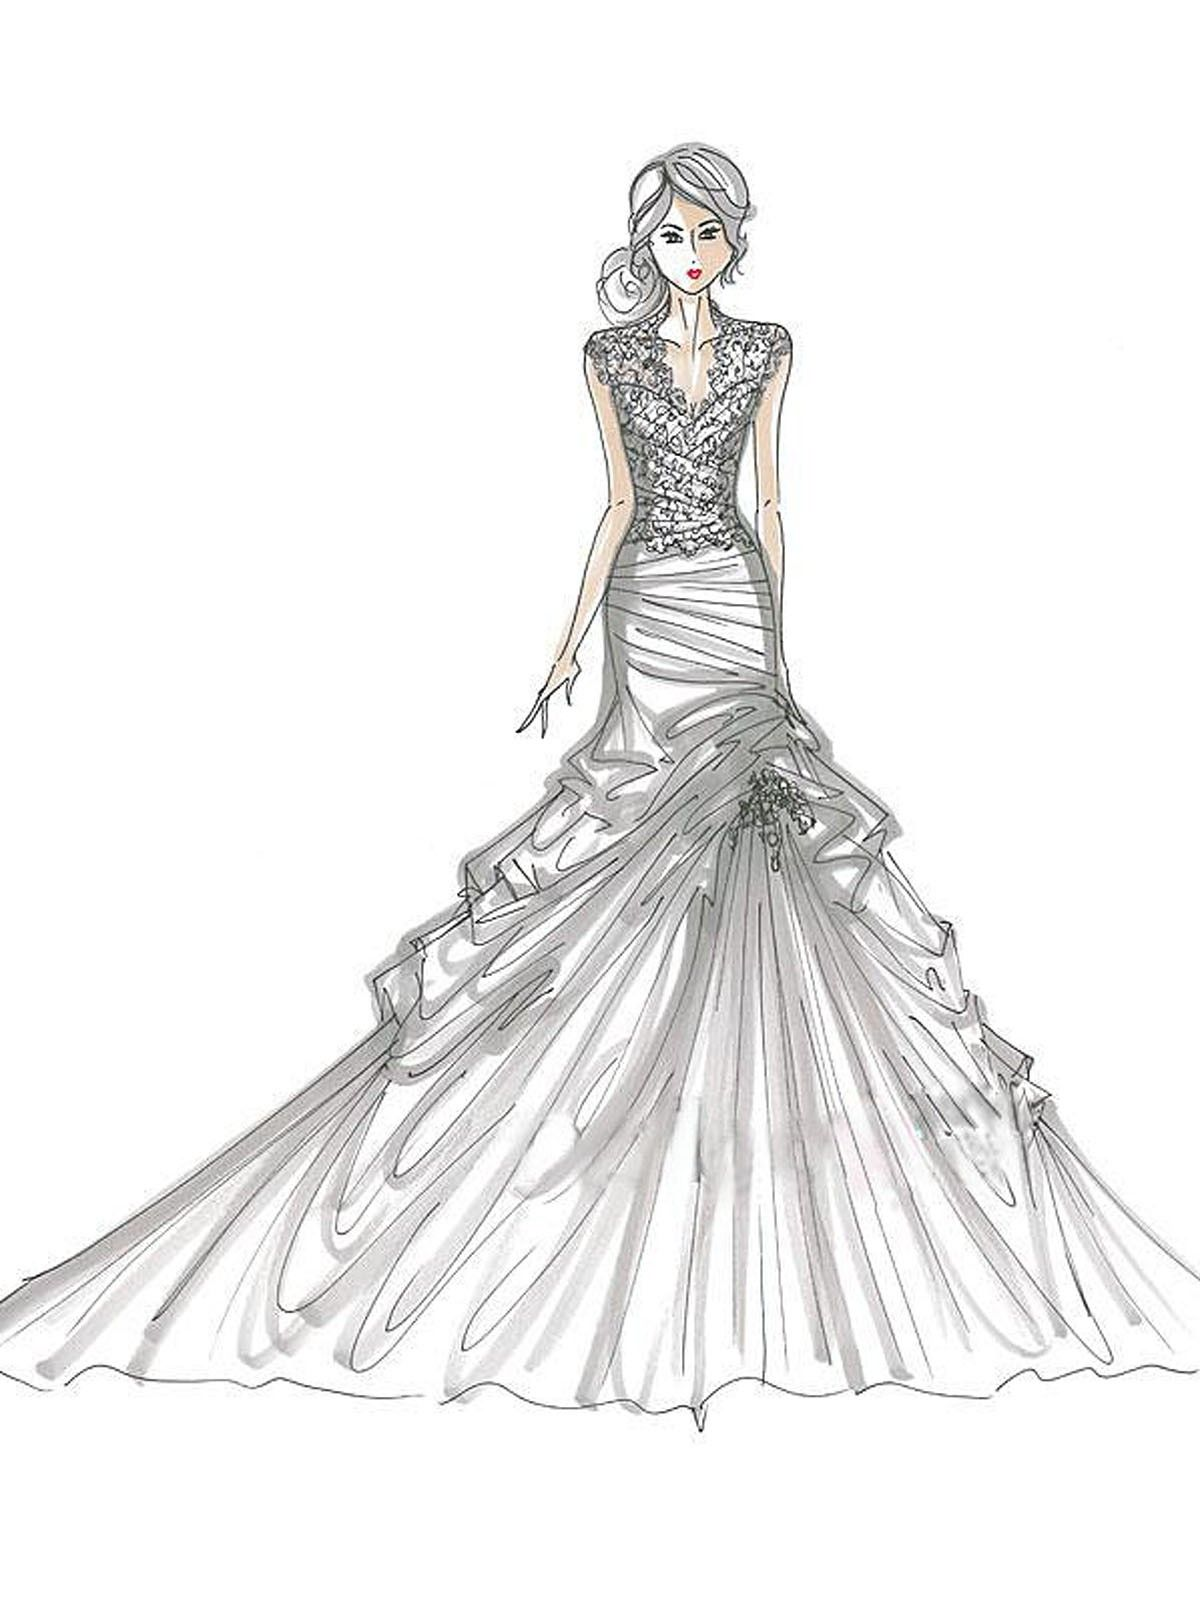 Of Wedding Dresses Coloring Pages For Kids And For Adults Color Fashion Pinterest